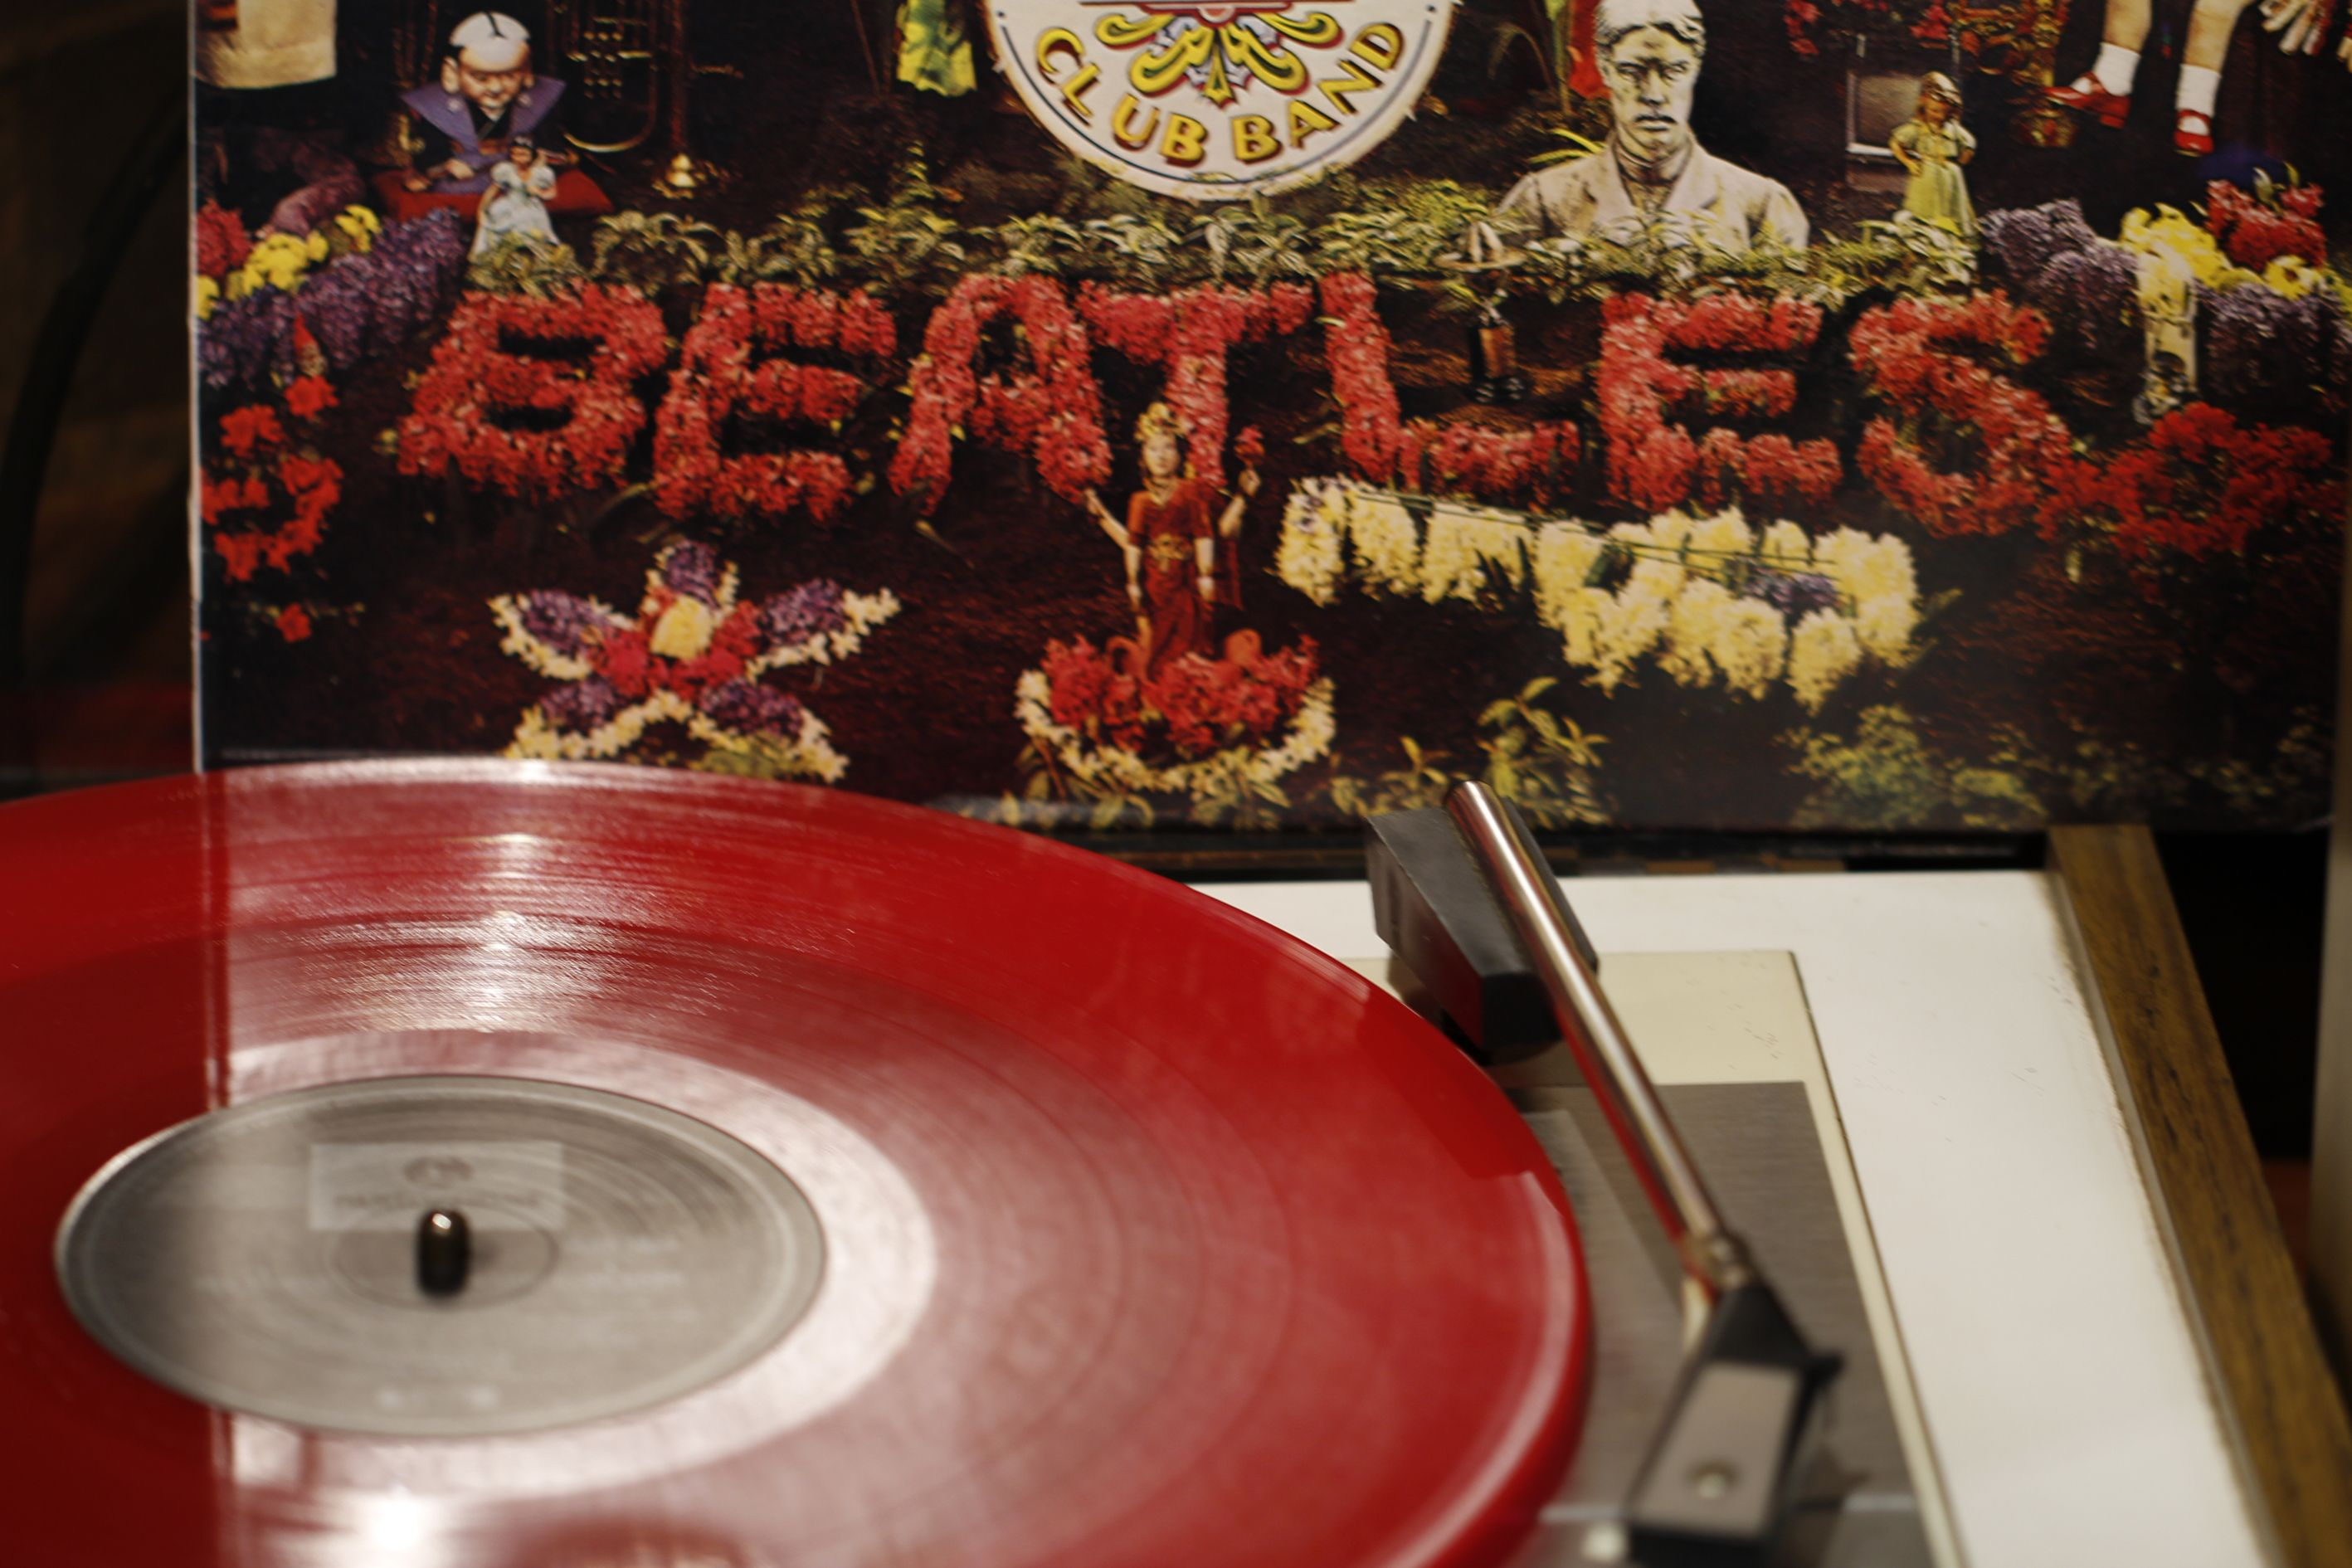 Special Edition Red Vinyl Beatles Sgt Pepper S Lonely Hearts Club Band Lp Record From Retr Beatles Sgt Pepper Sgt Peppers Lonely Hearts Club Band Lonely Heart